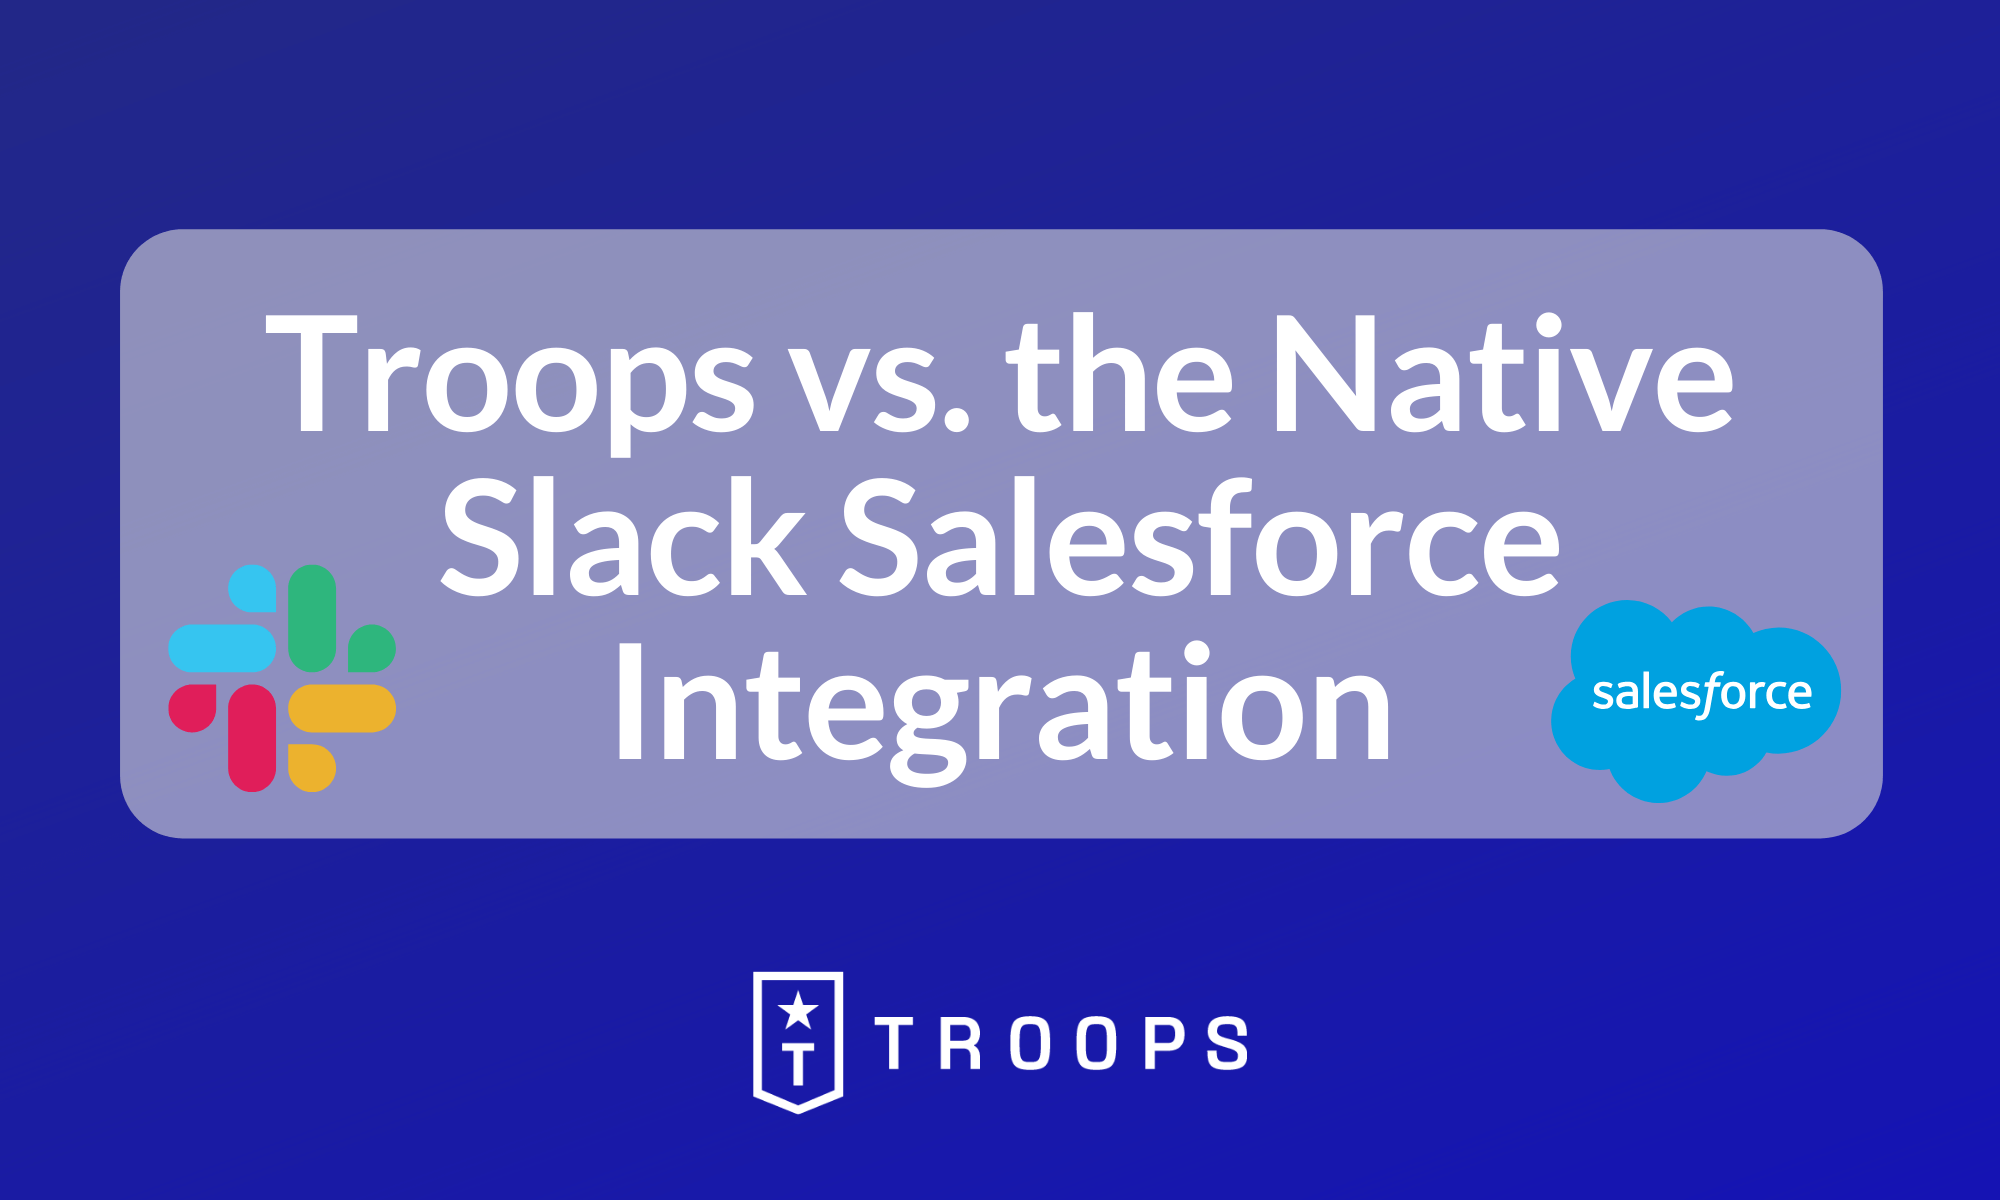 Troops vs. the Native Slack Salesforce Integration